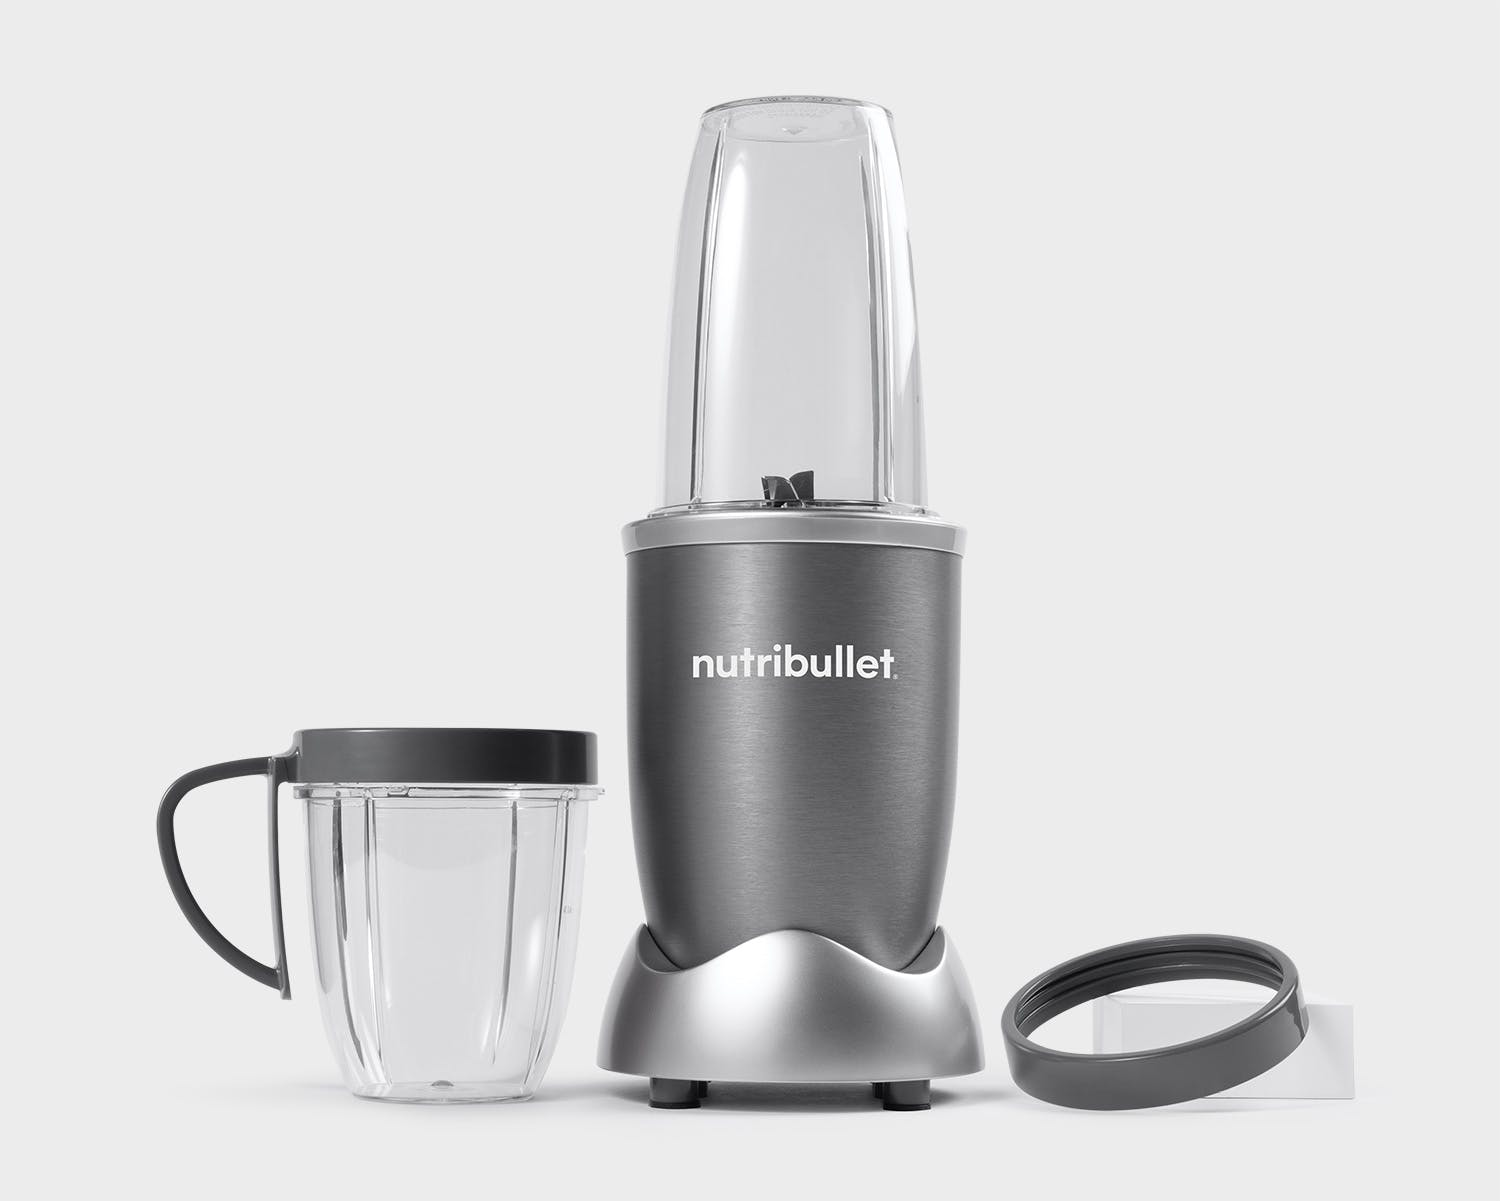 NutriBullet 600 Watt Blender - The Original Personal Blender